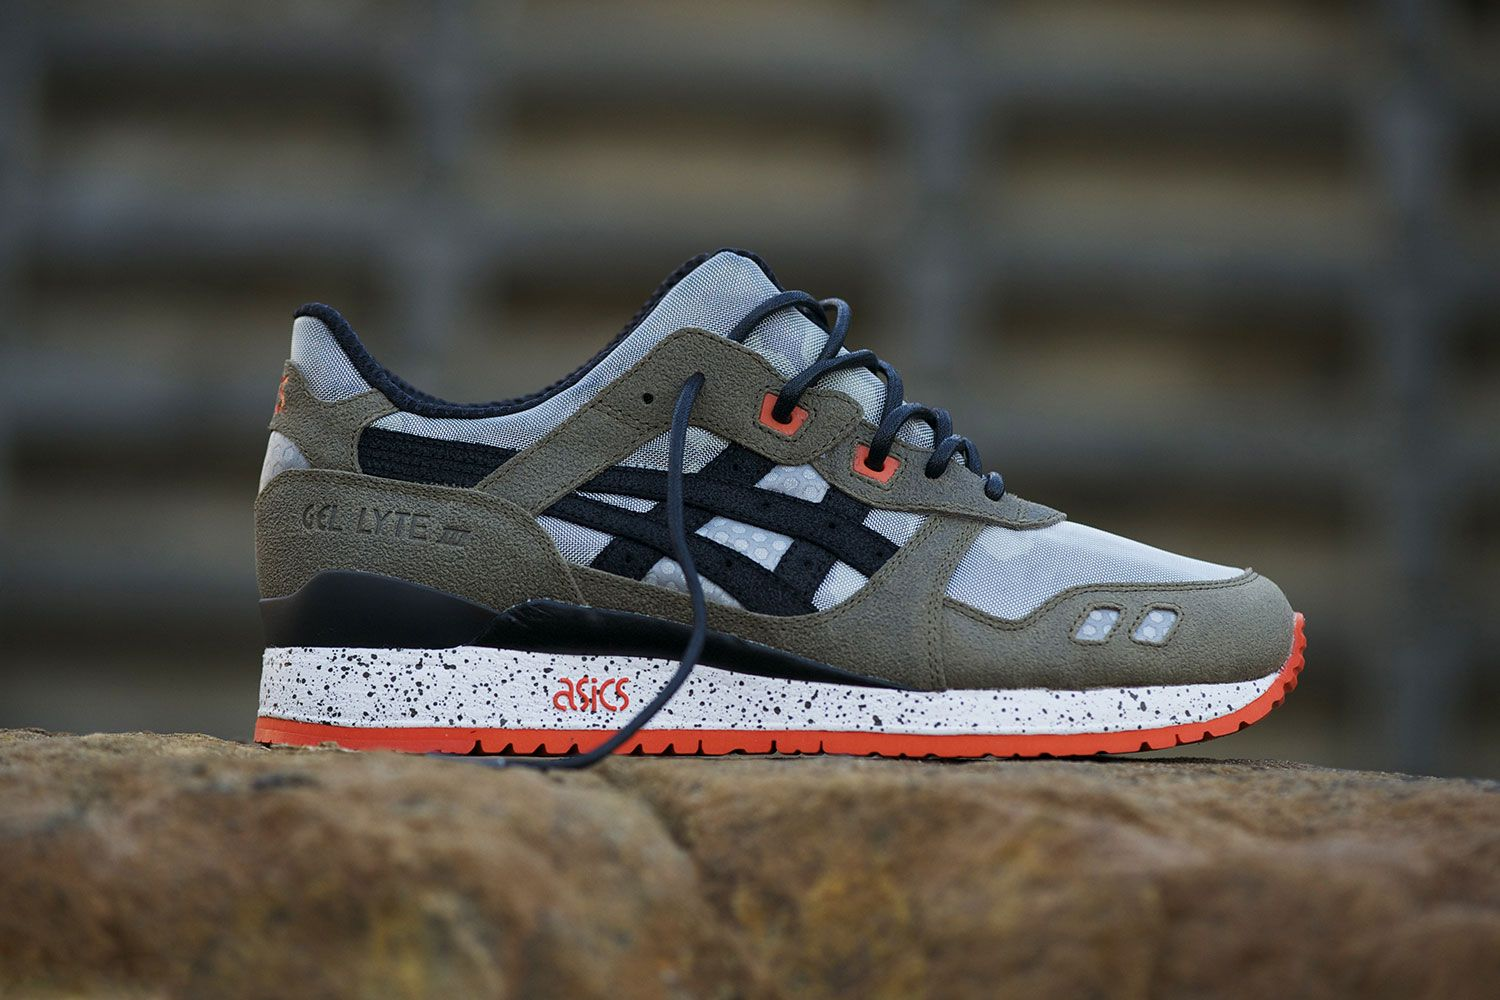 where can i buy asics gel lyte 3 online